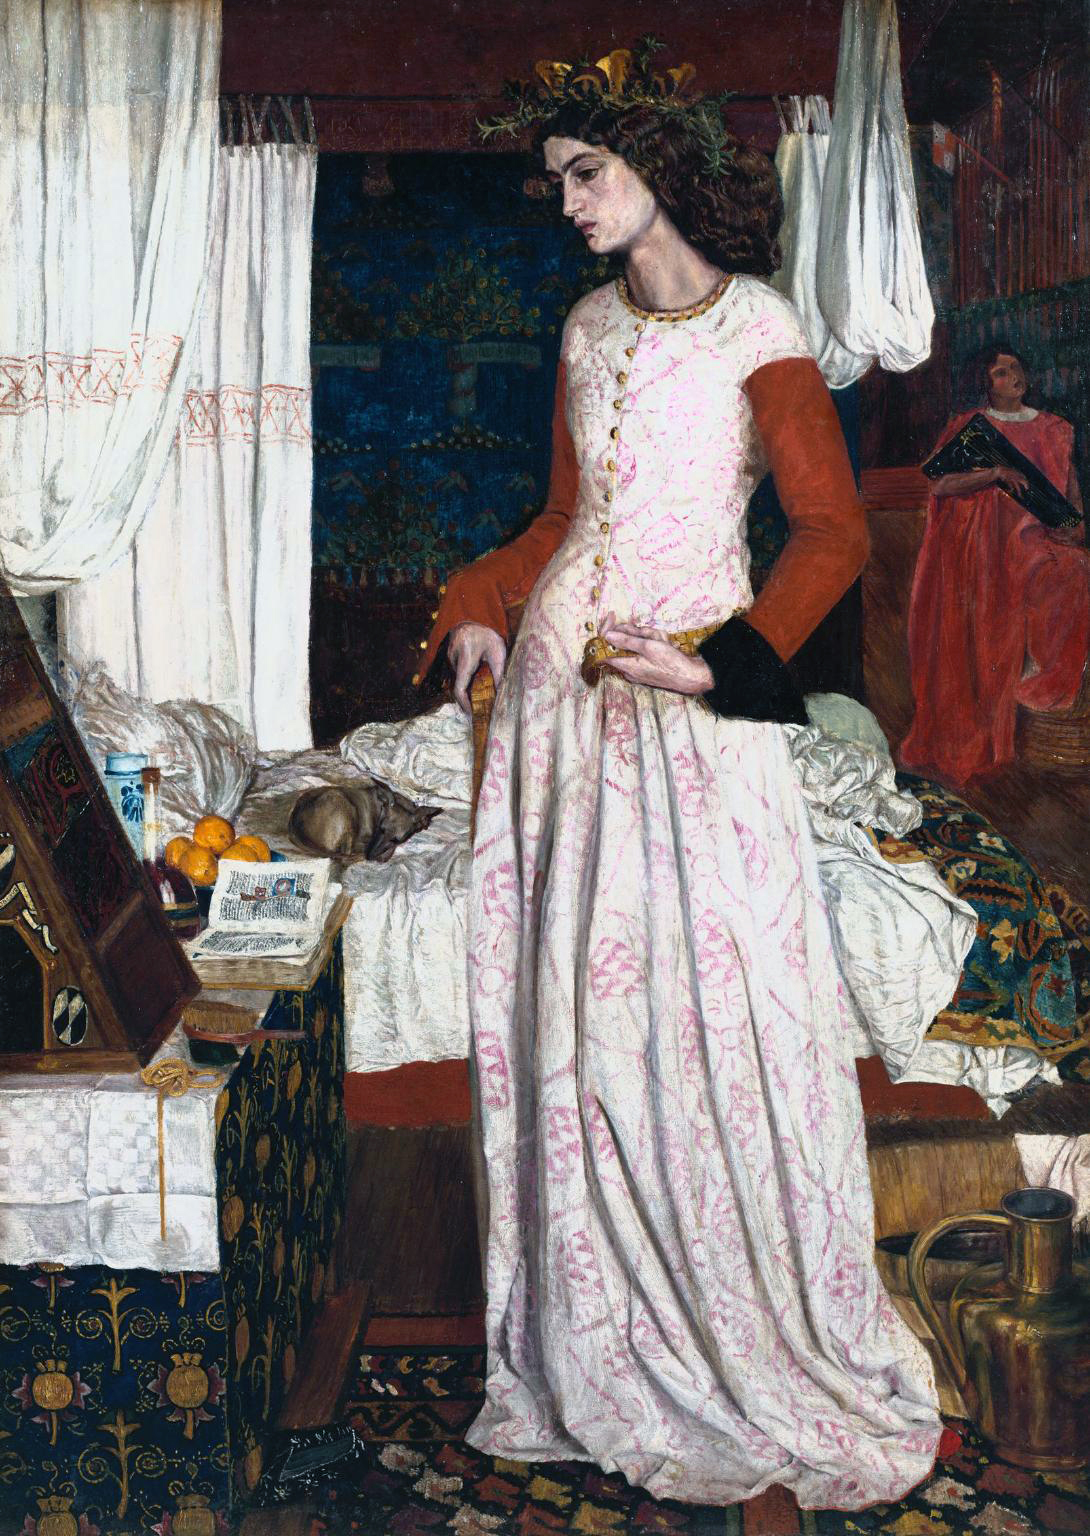 Morris's painting La belle Iseult, also inaccu...